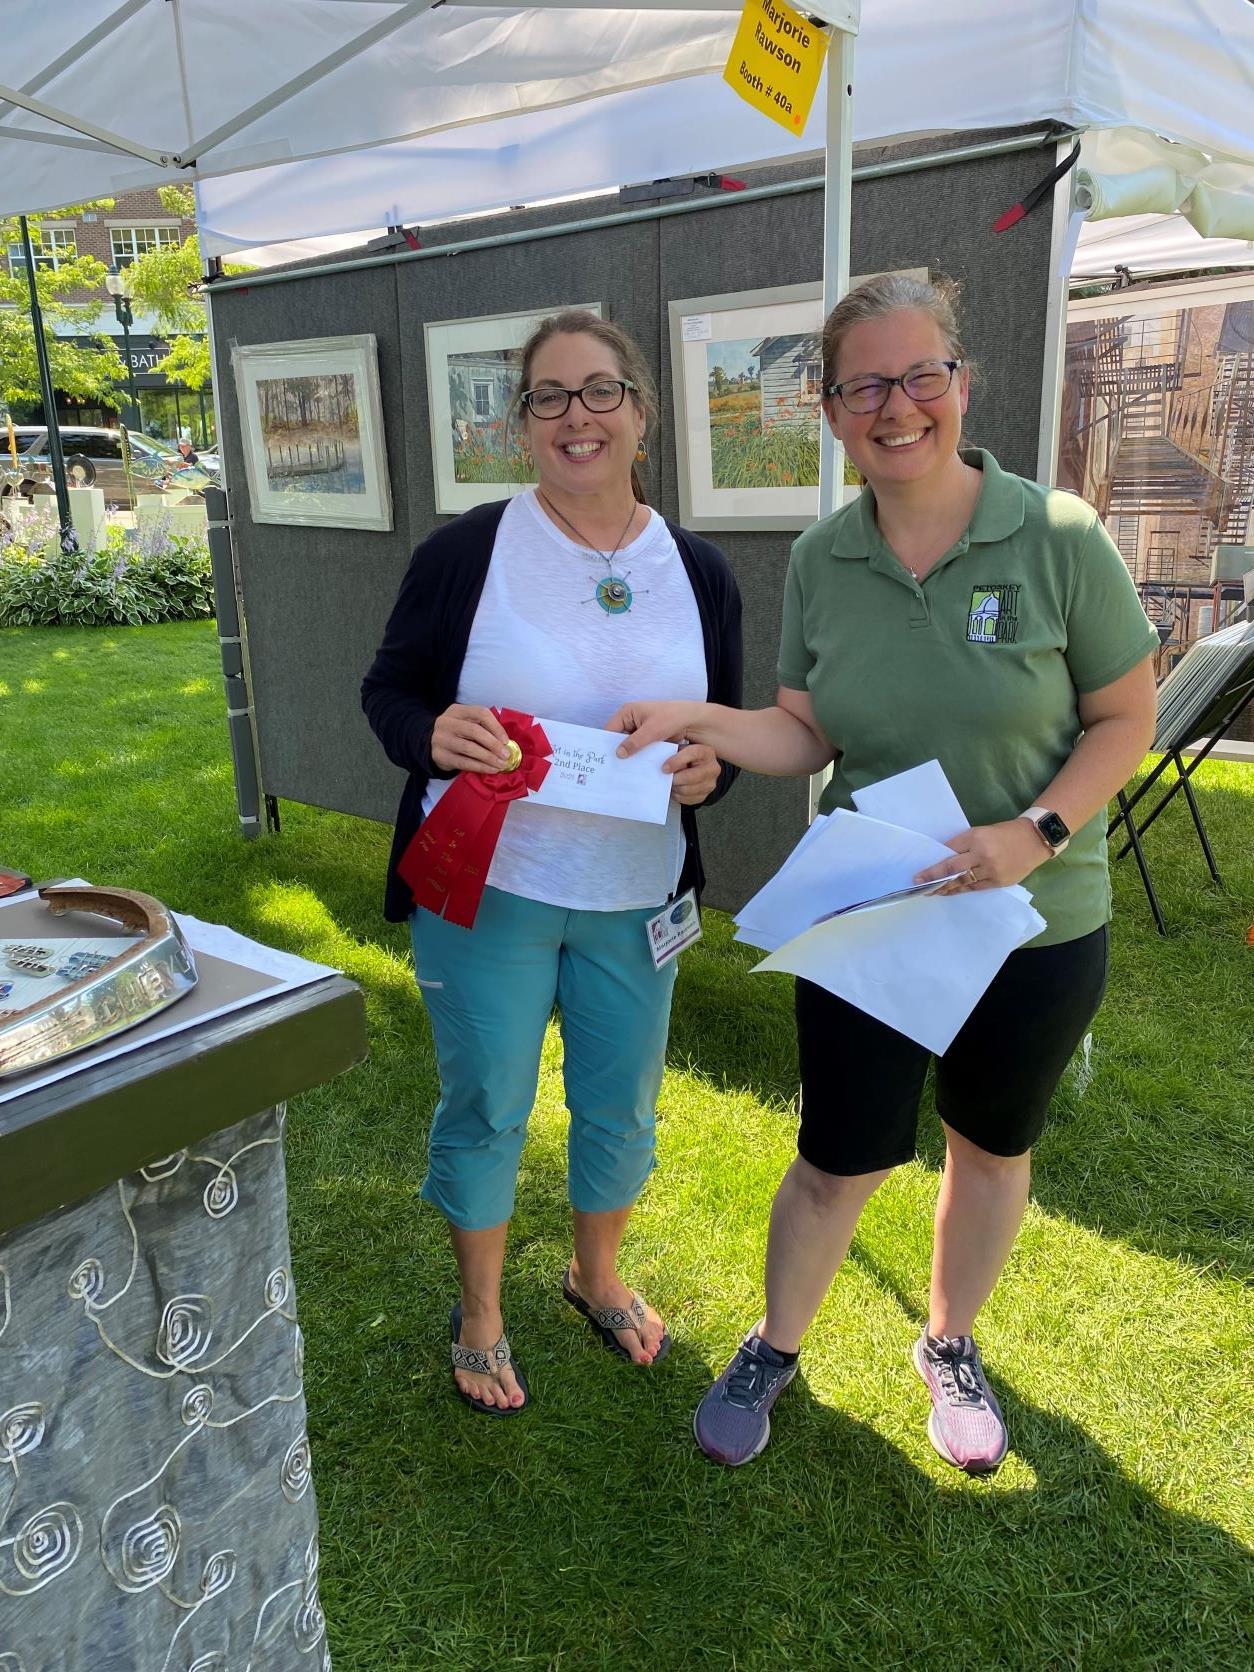 Marjorie Rawson - Second Place - 2021 Petoskey Art in the Park